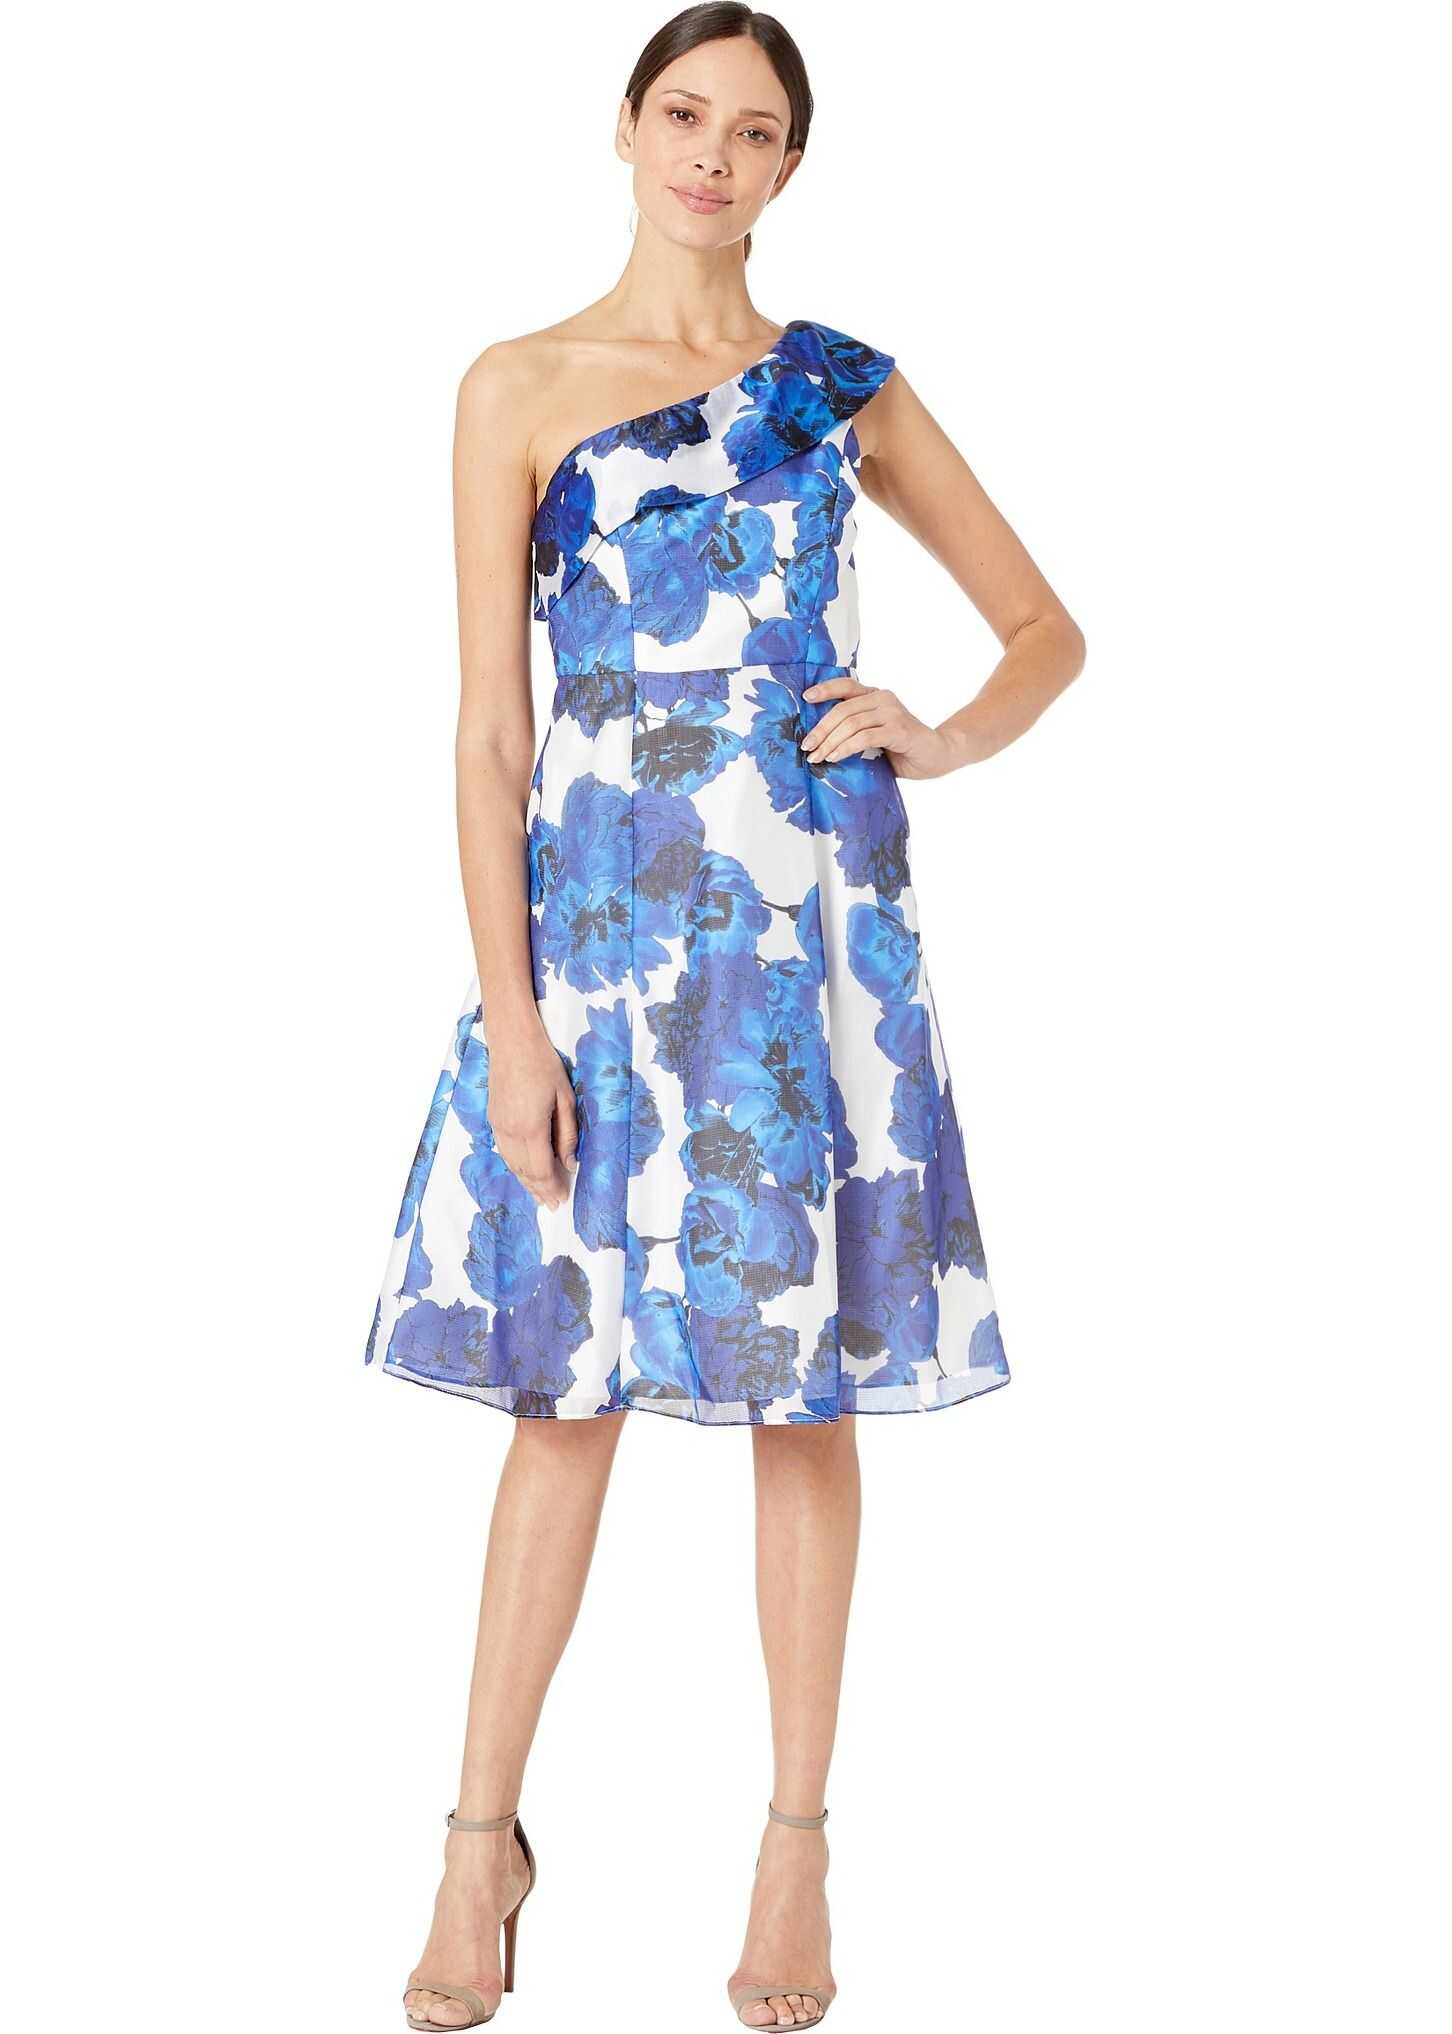 Adrianna Papell One Shoulder Fit and Flare Cocktail Dress Royal/Ivory